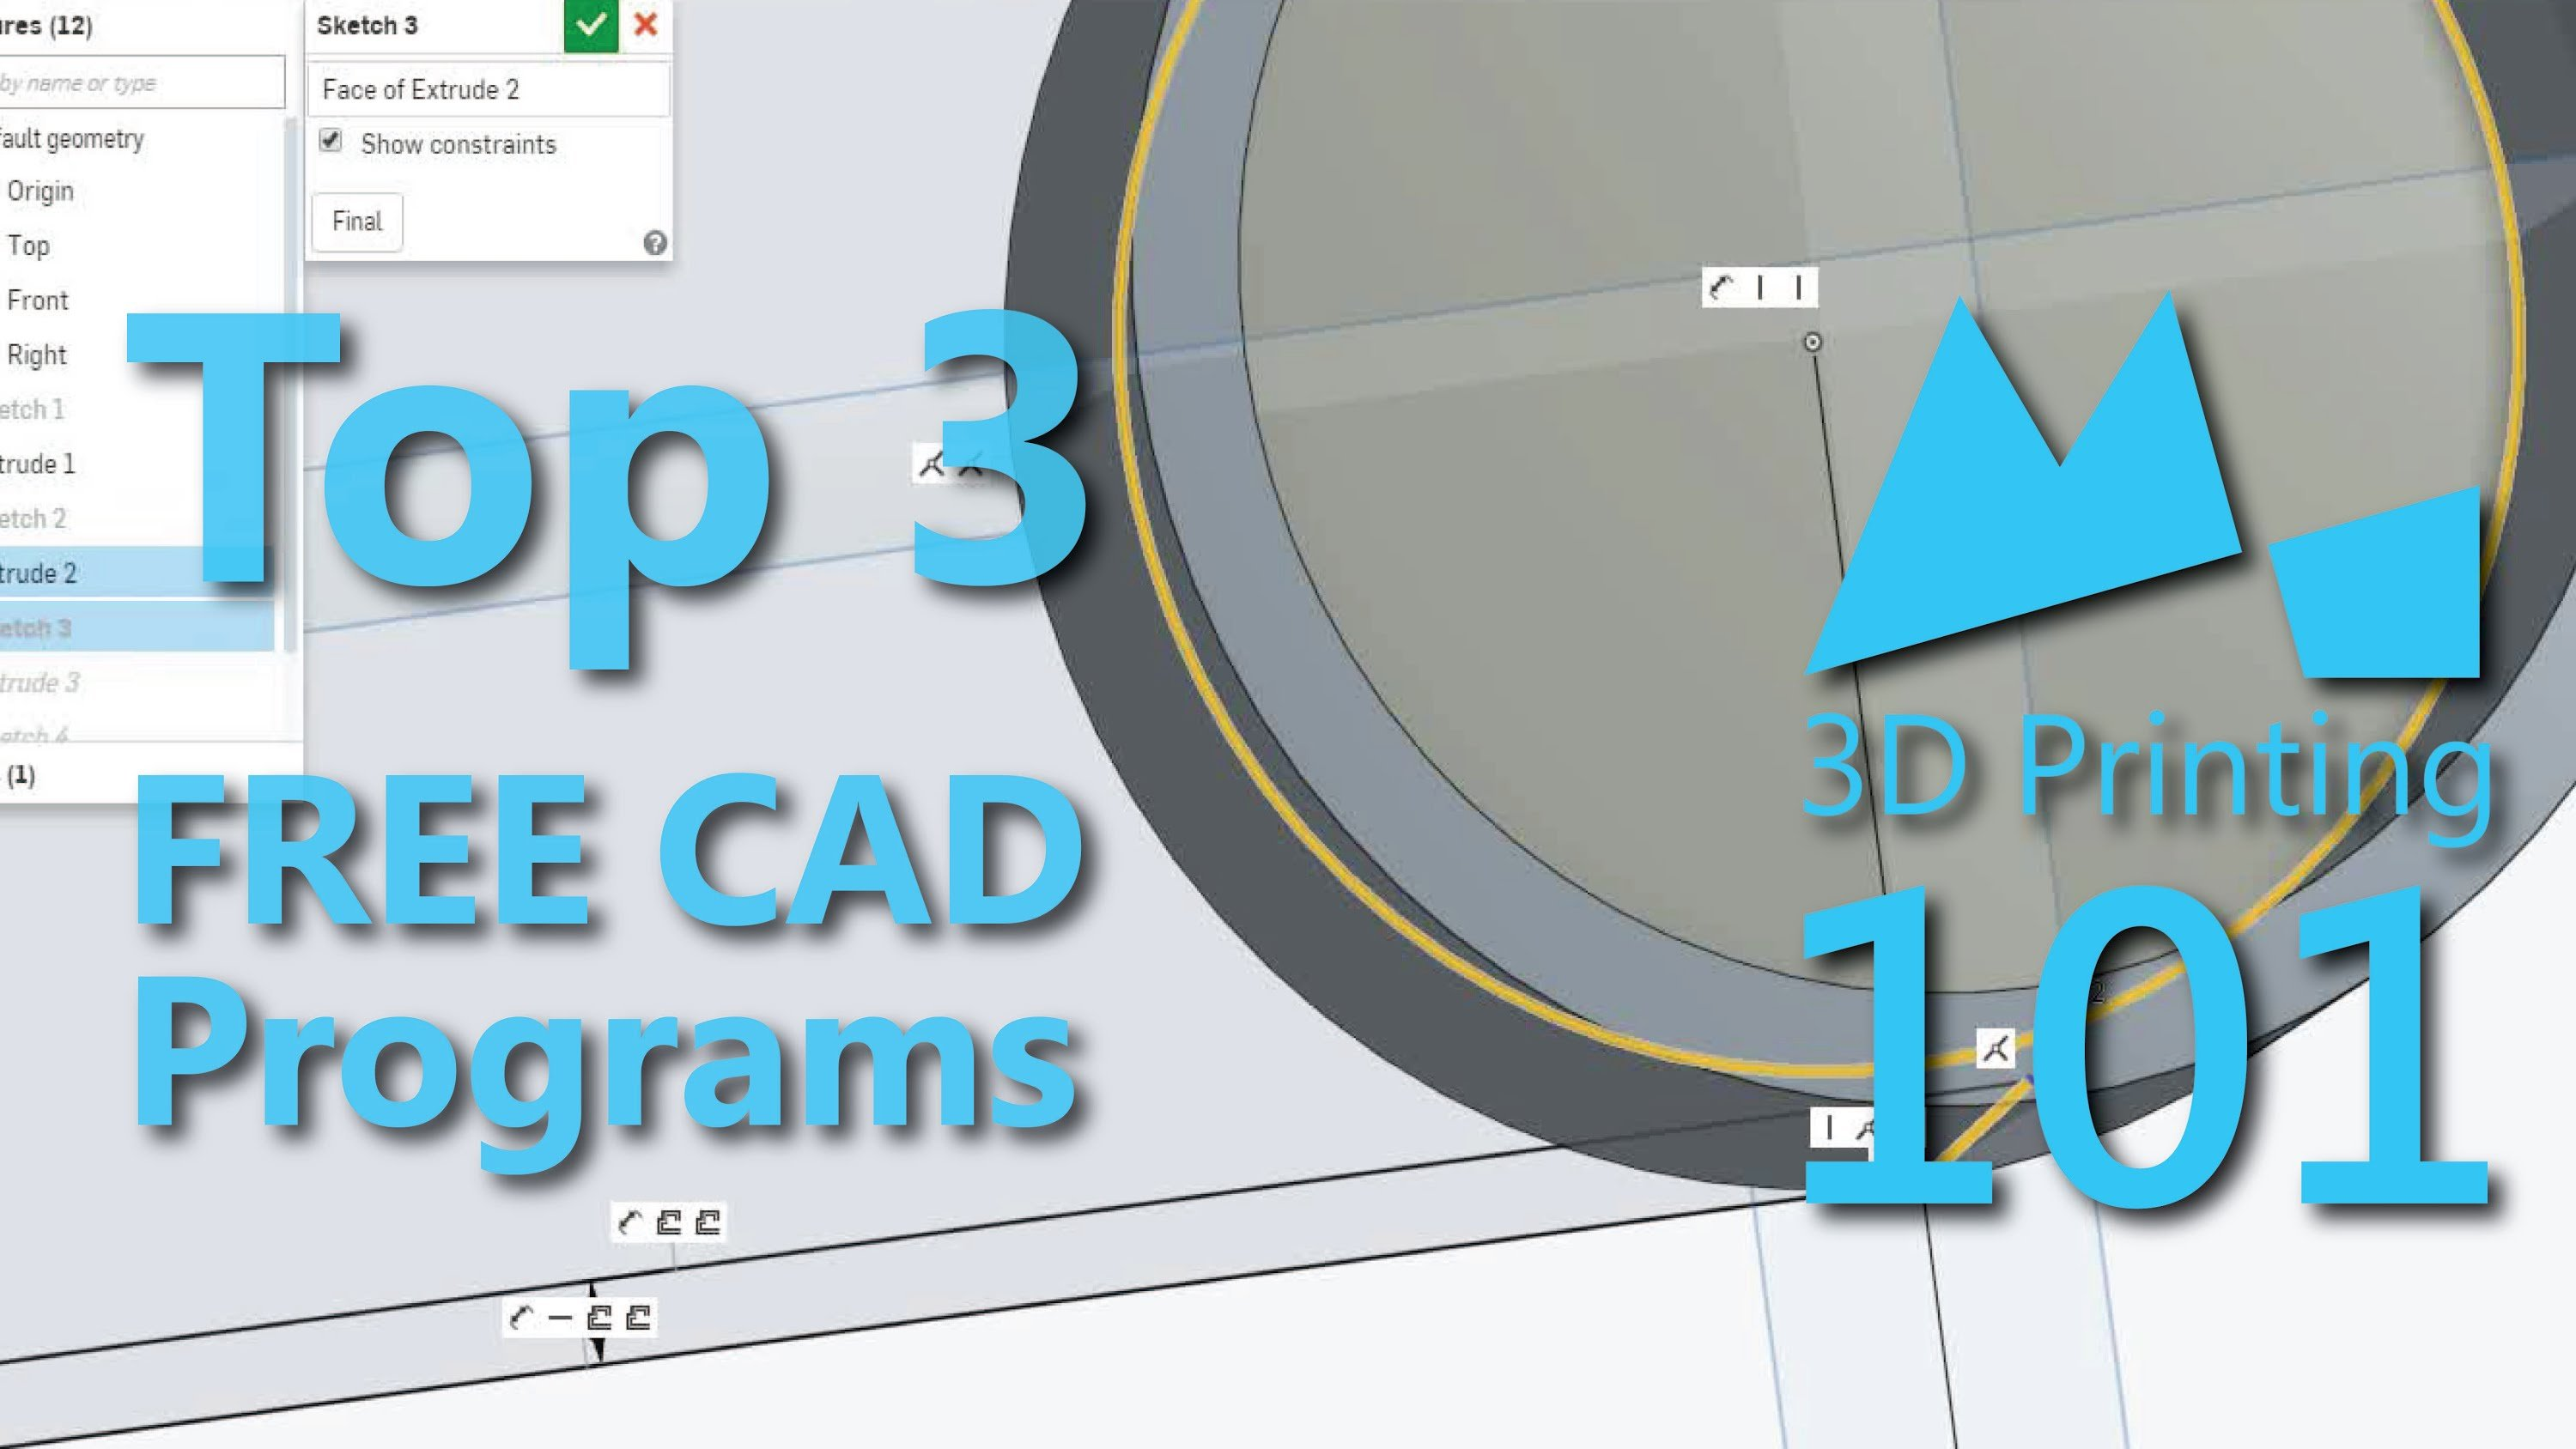 Top 3 free cad for 3dprinting adafruit industries for Free 3d drawing software online